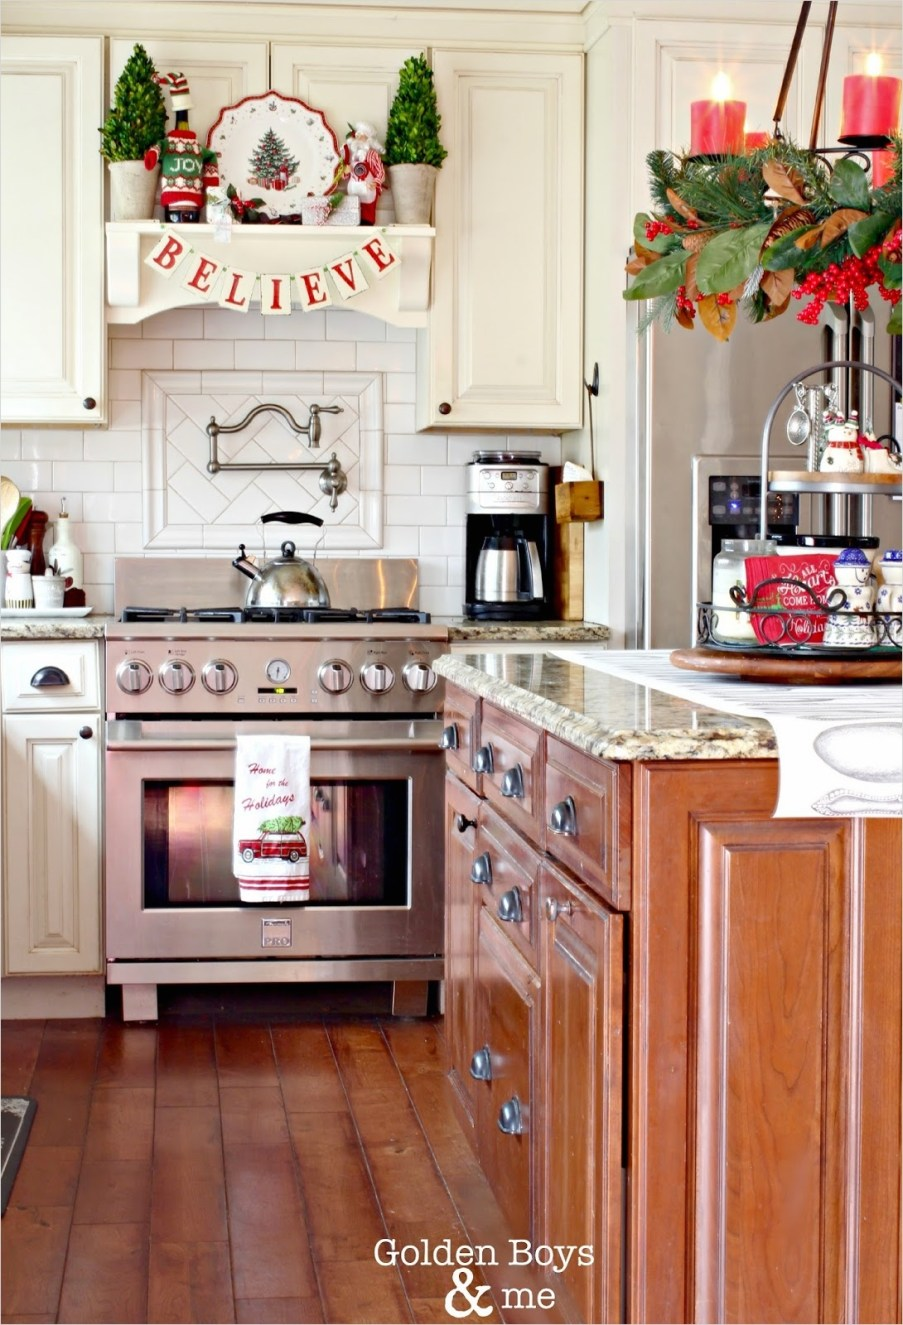 42 Awesome Kitchen Christmas Decorating Ideas 39 Golden Boys and Me Christmas In the Kitchen 7